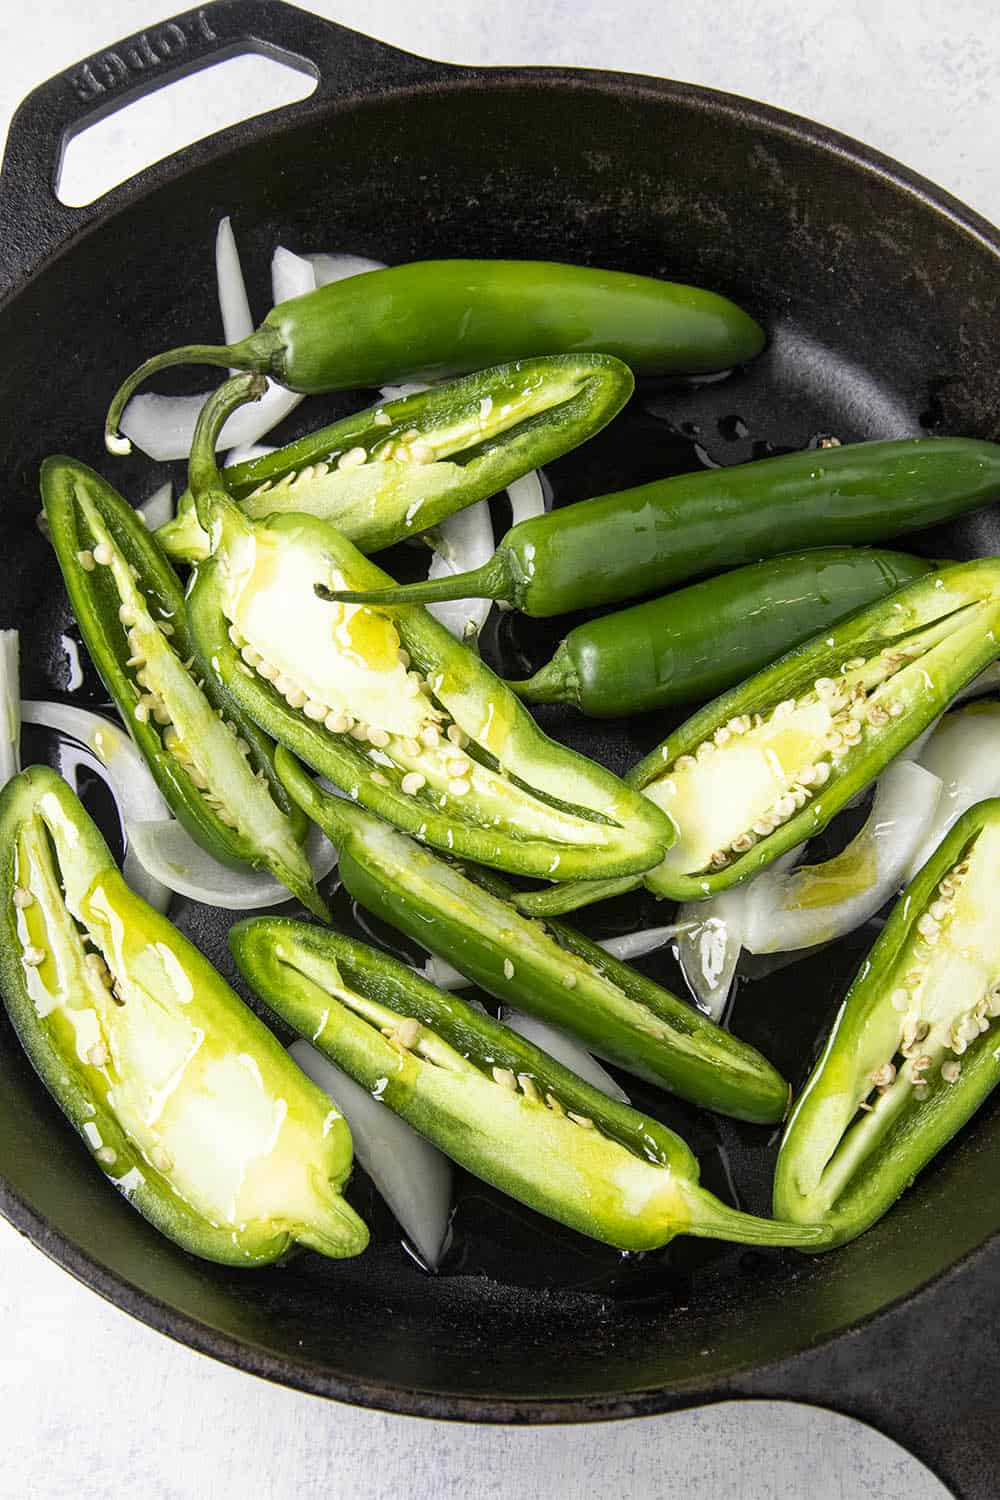 Drizzling olive oil over the jalapeno and serrano peppers in a hot pan